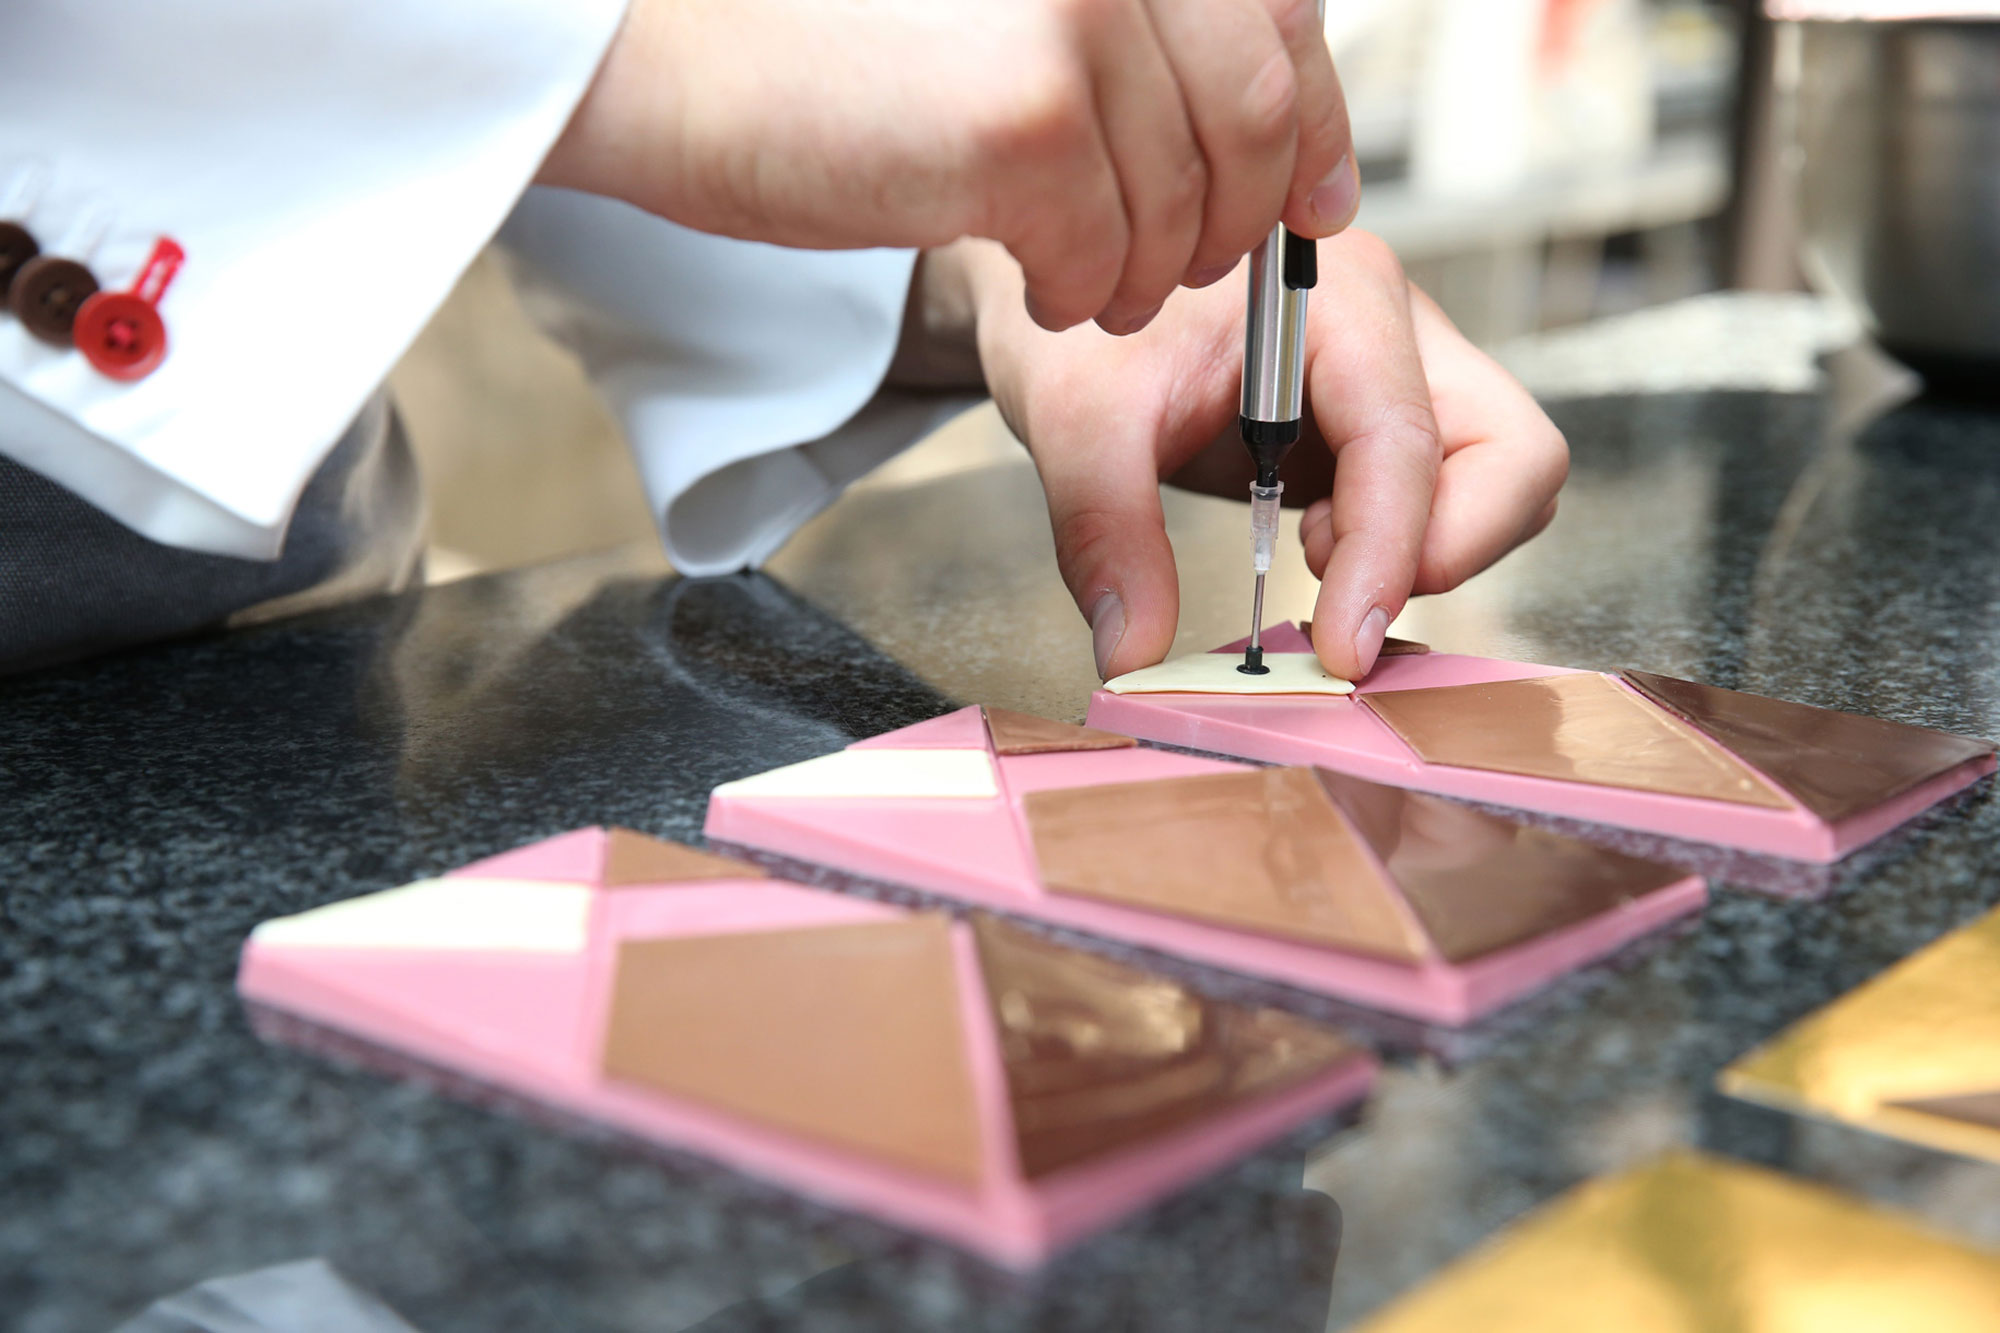 A chef putting together a four-chocolate bar.